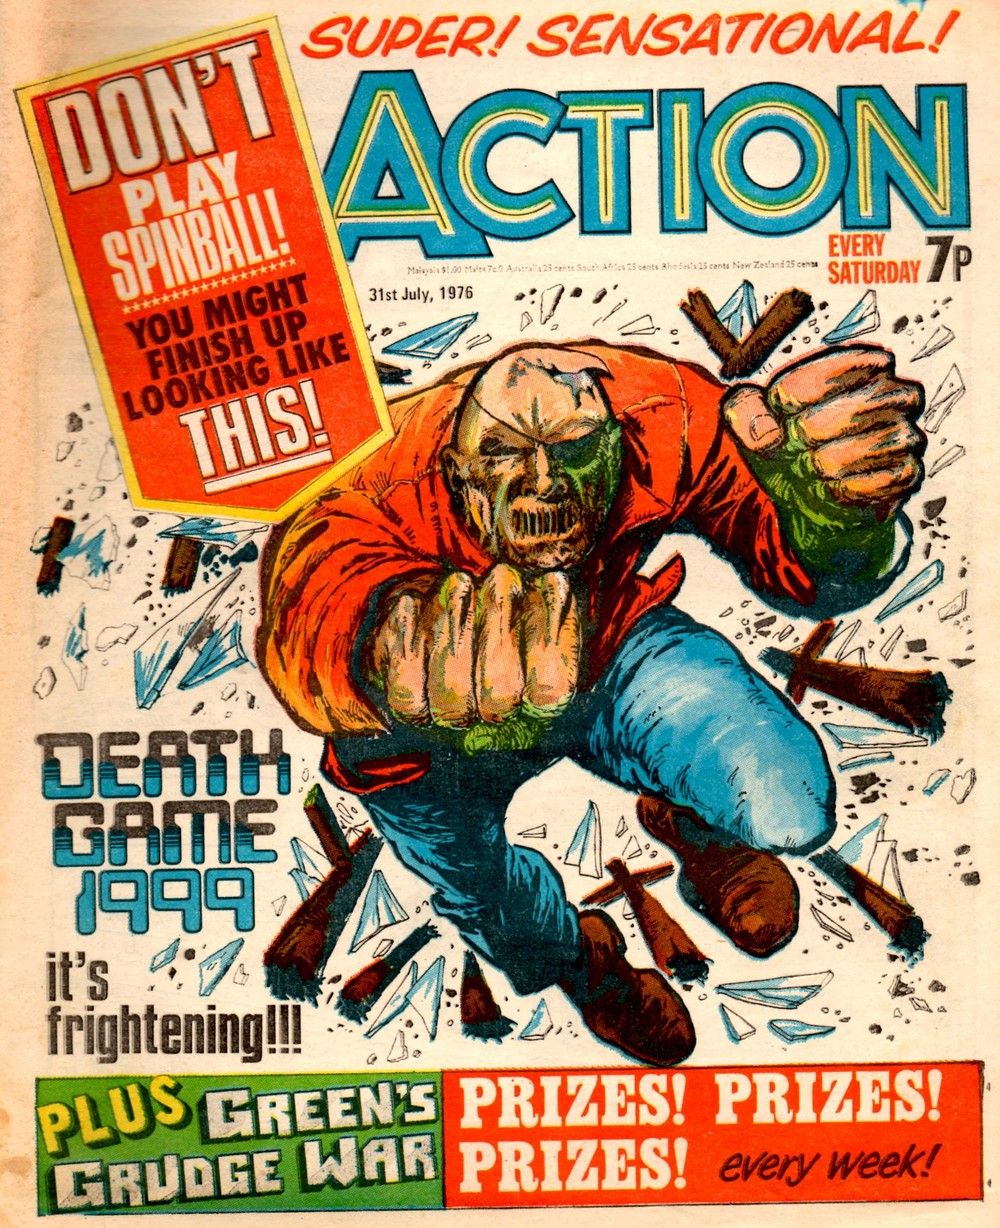 Action, 31 July 1976